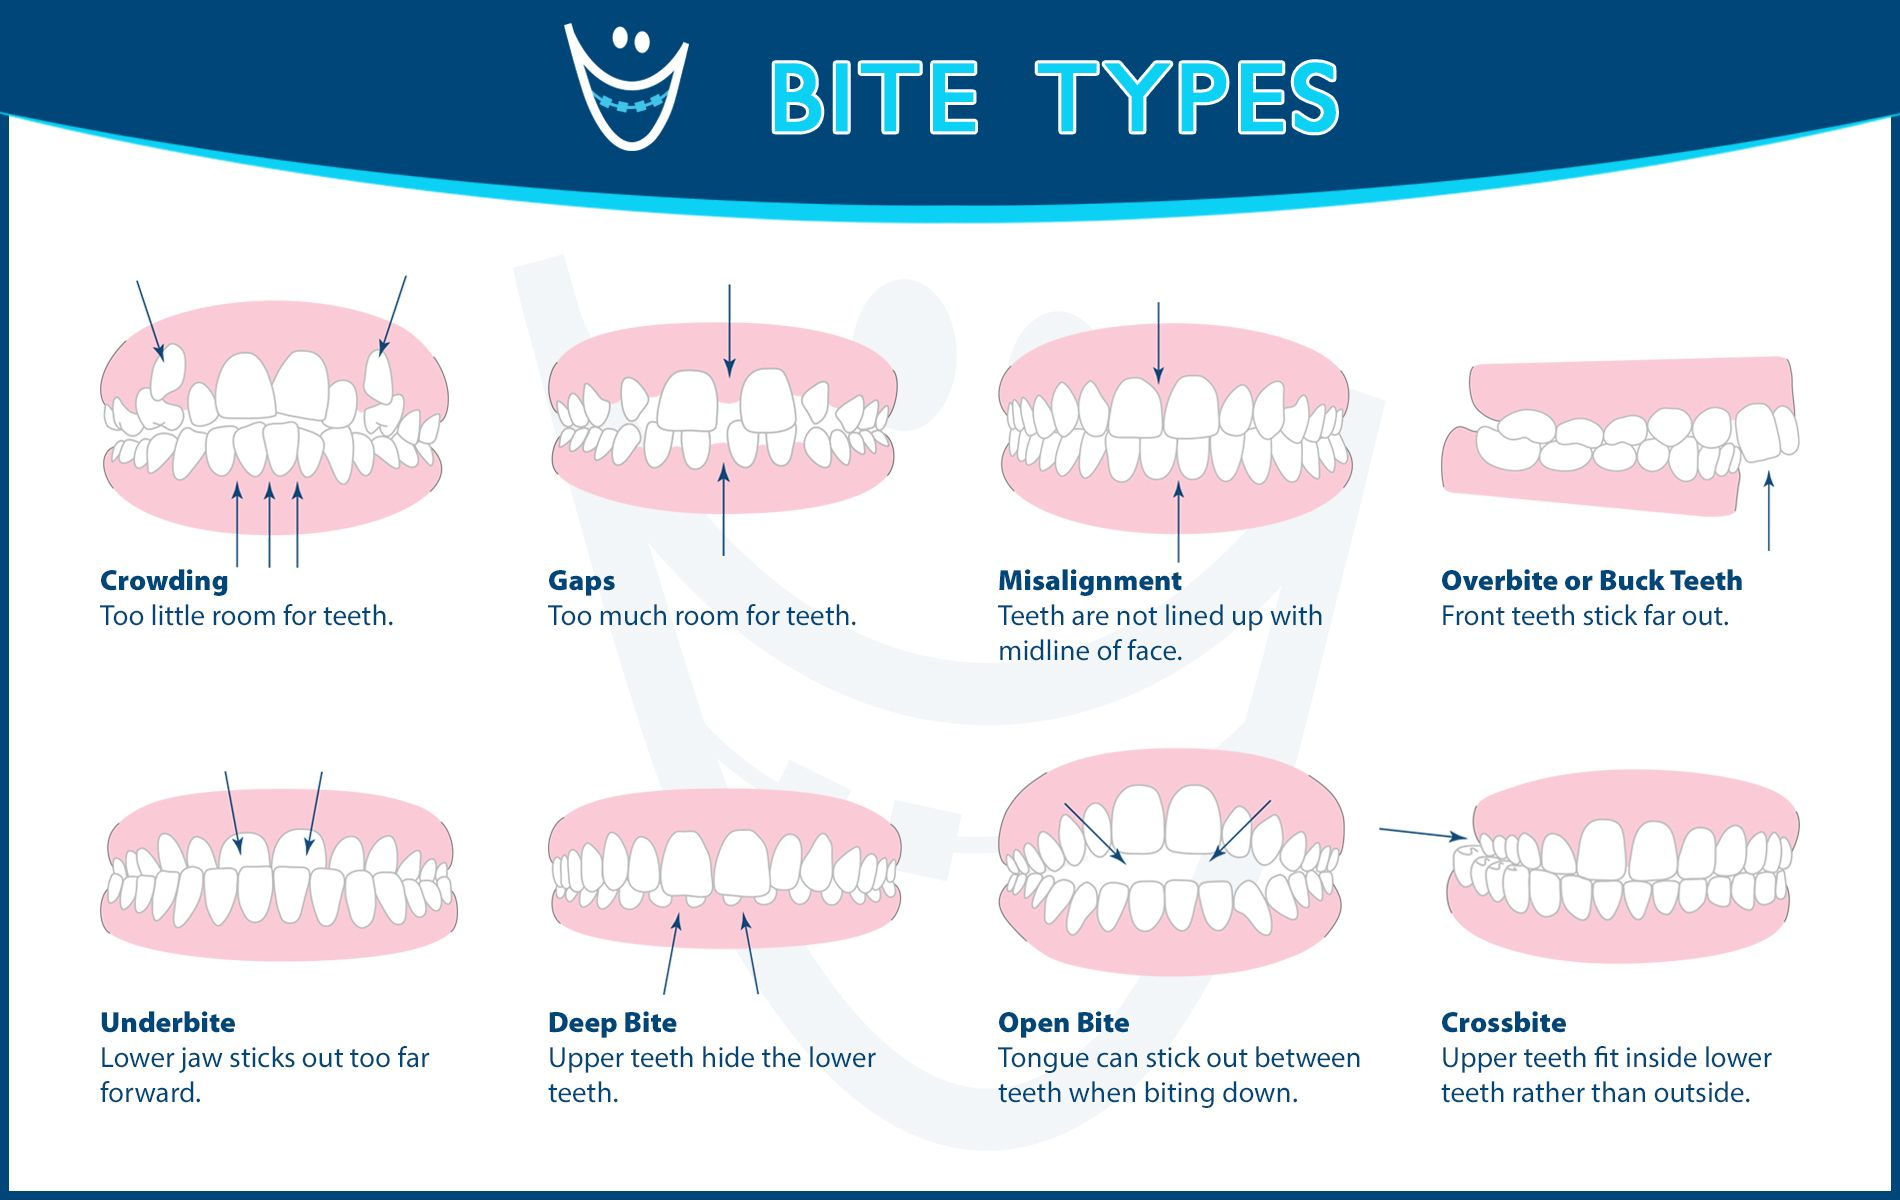 Understanding The Different Types Of Bites